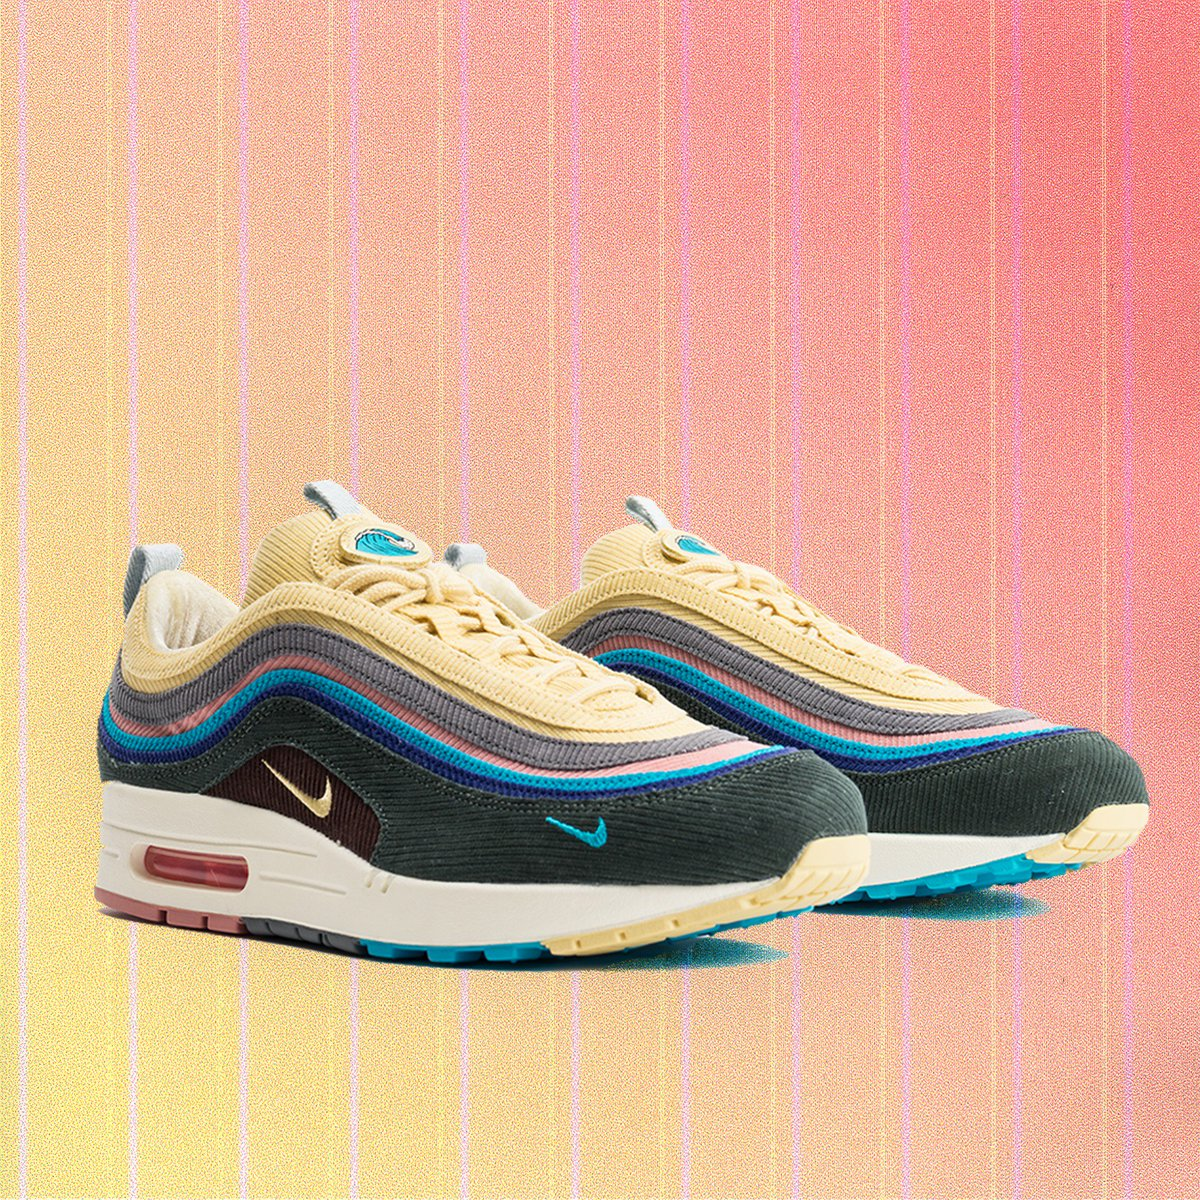 NIKE AIR MAX DAY SEAN WOTHERSPOON – Saint Alfred